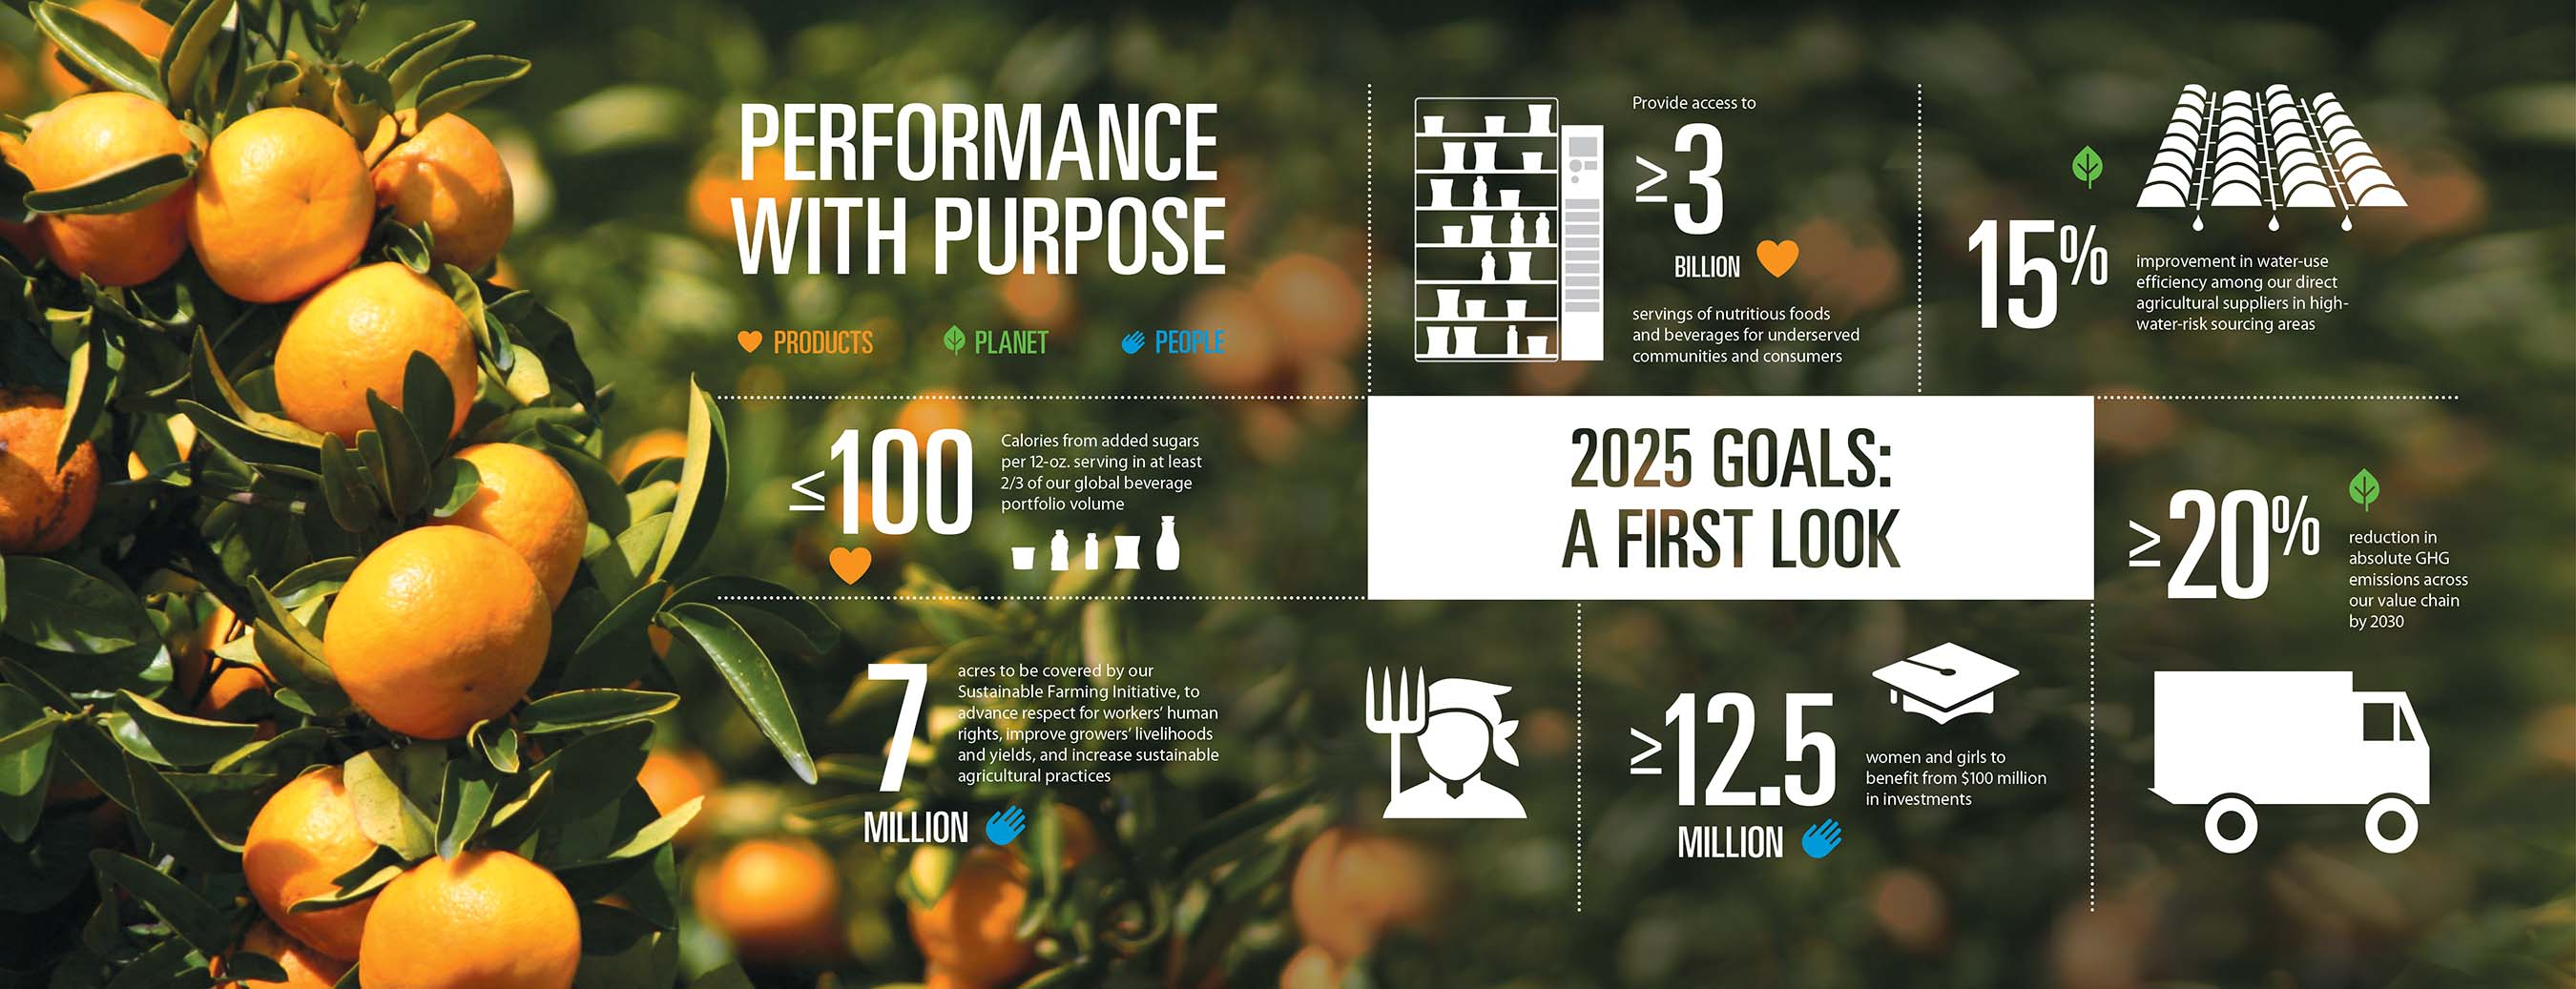 PepsiCo Performance with Purpose Infographic